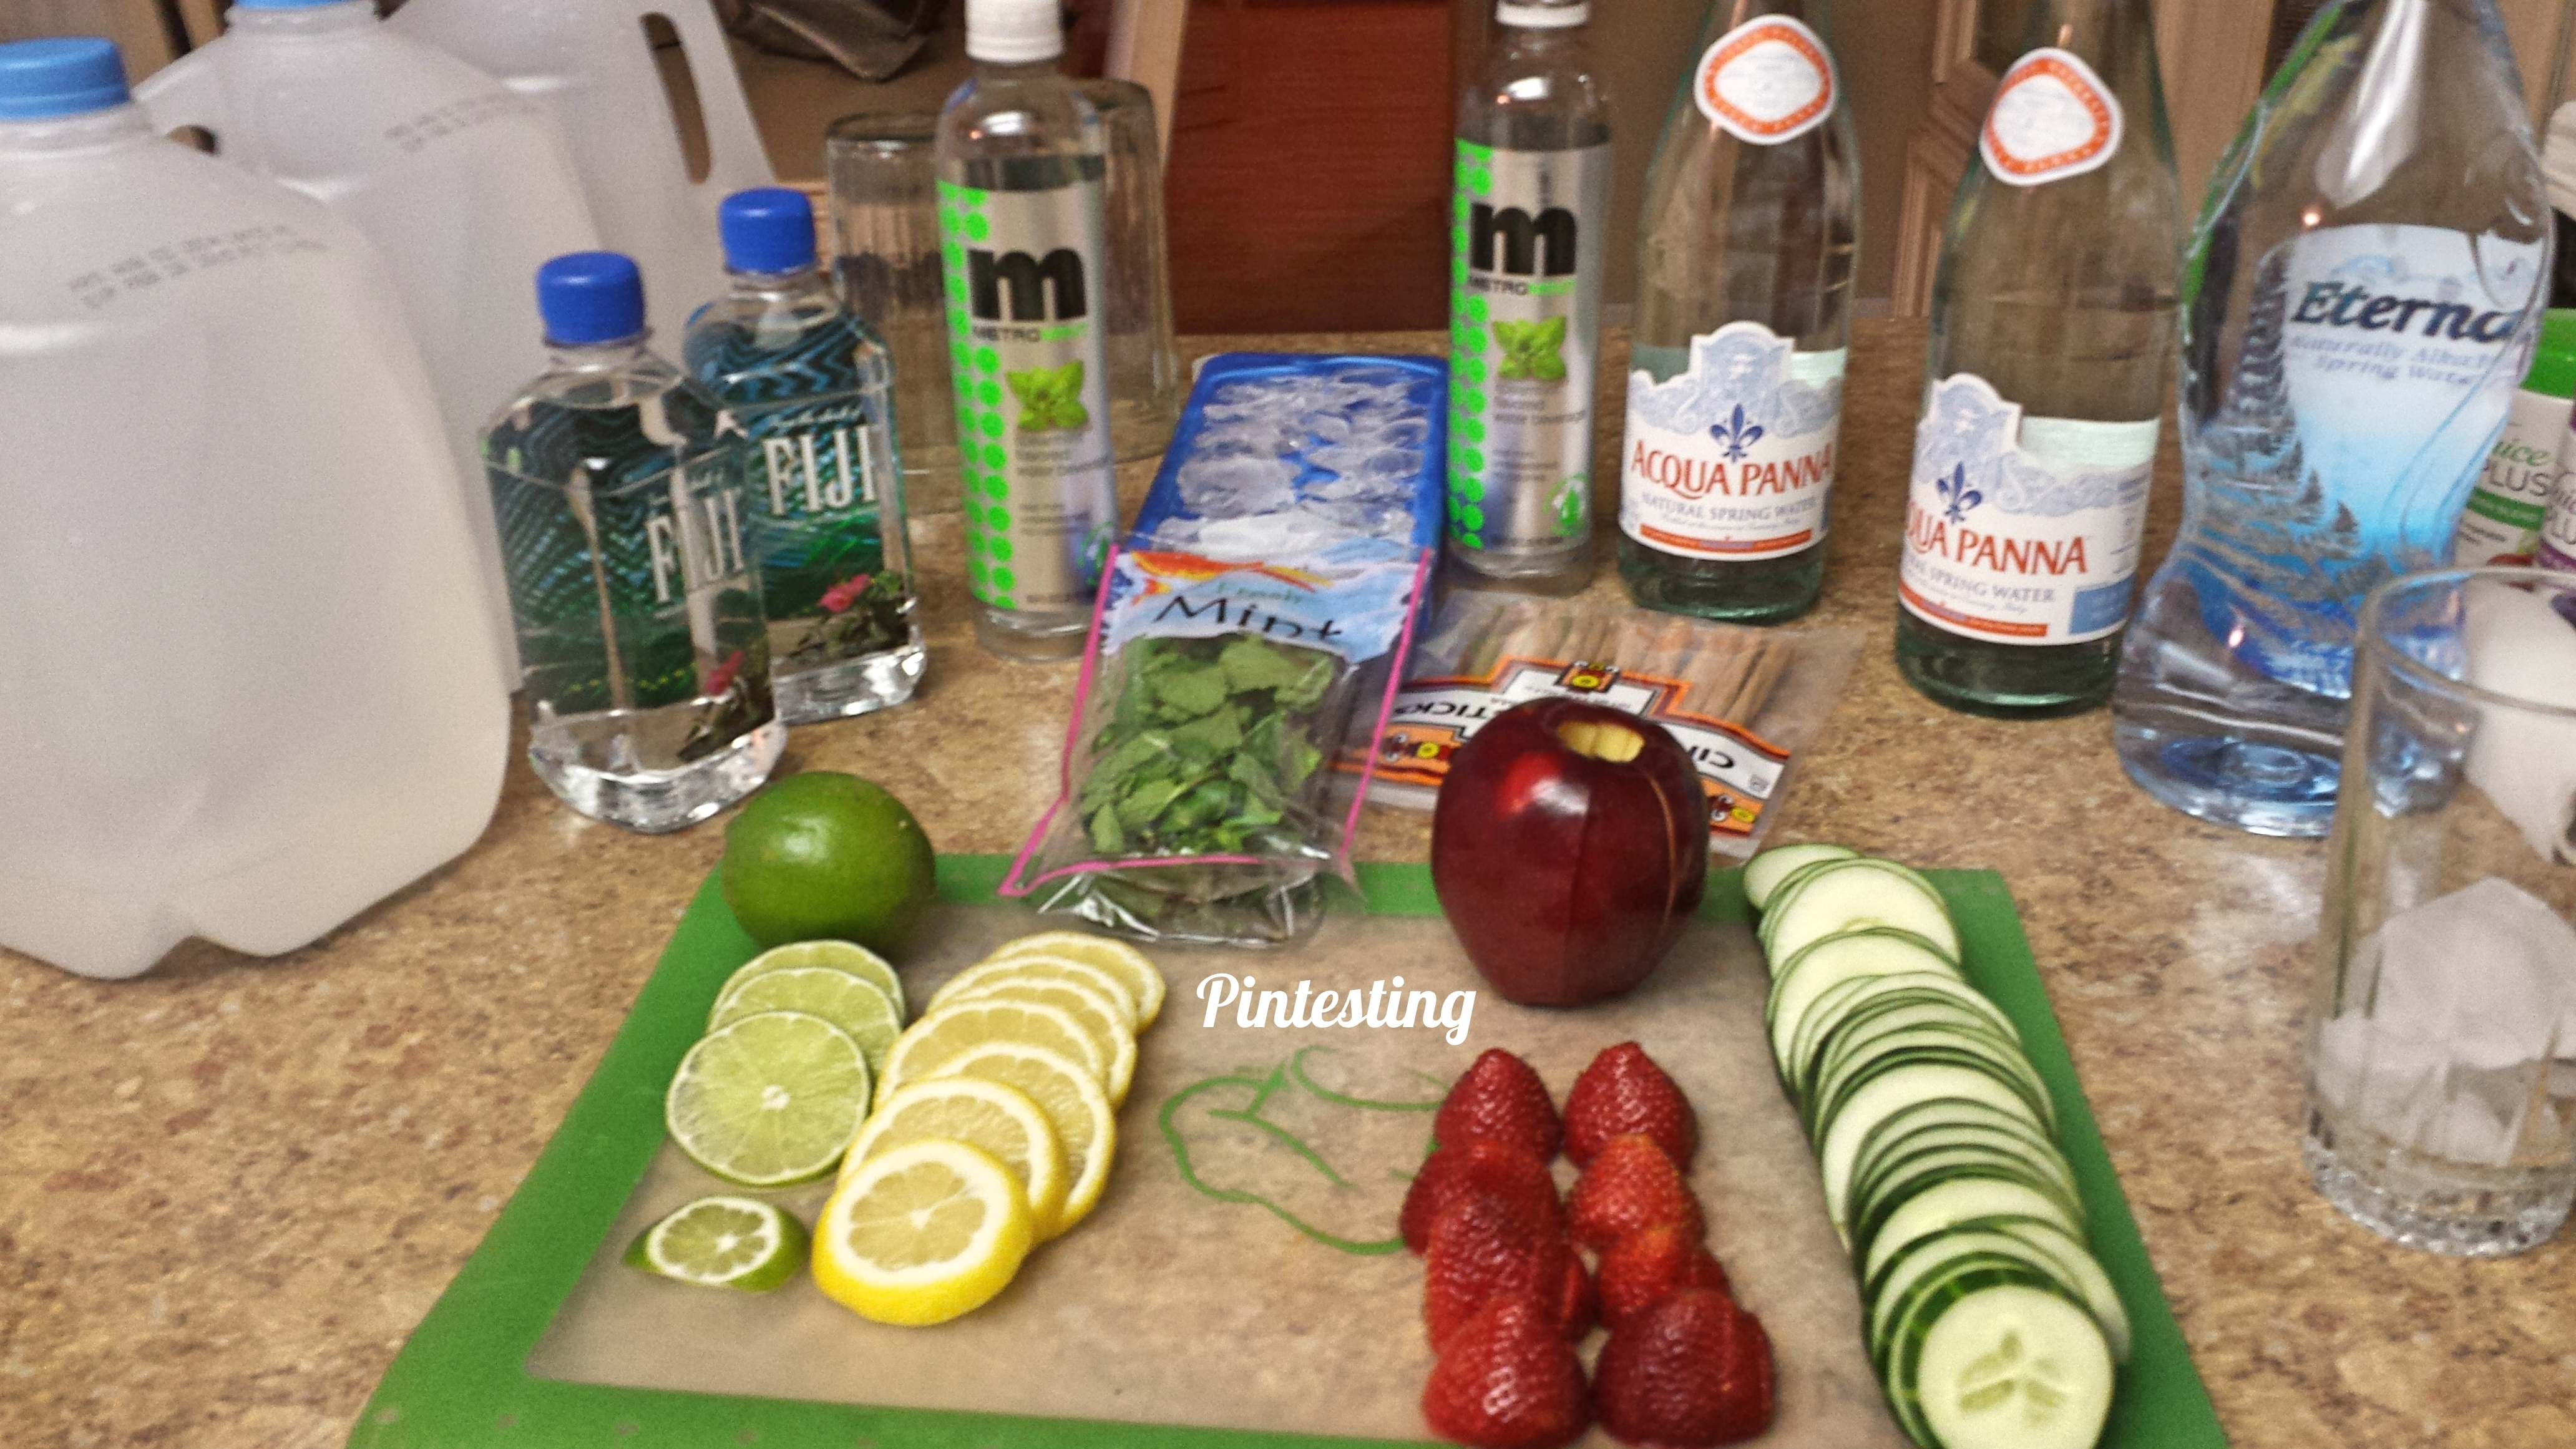 Pintesting - Infused Water Bar - All